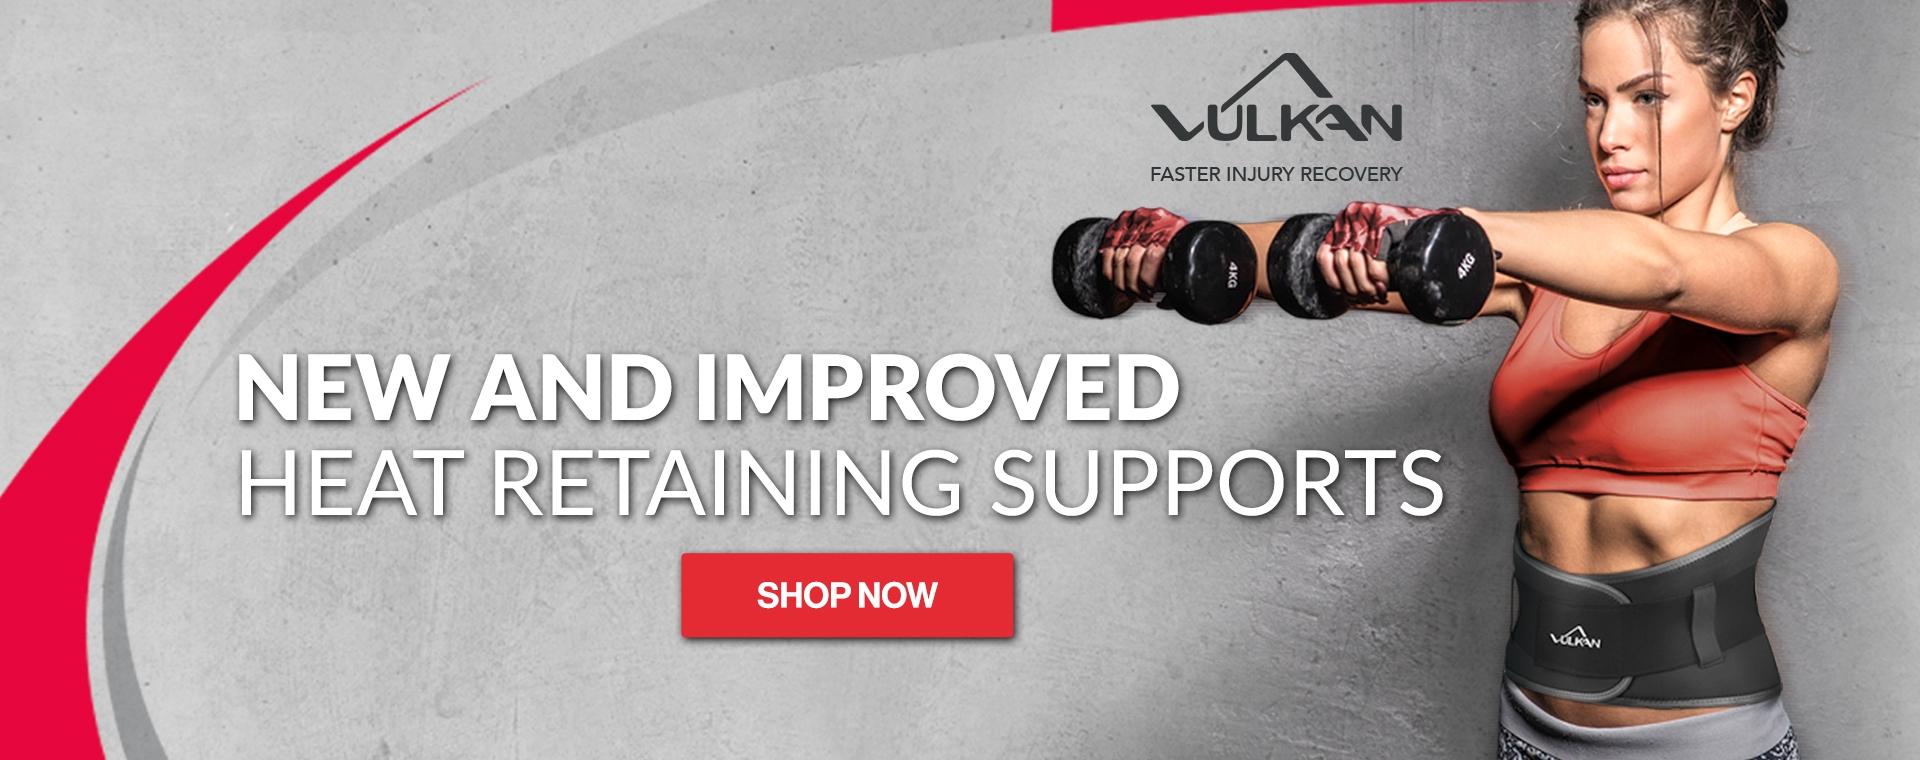 Vulkan Heat Retaining Supports